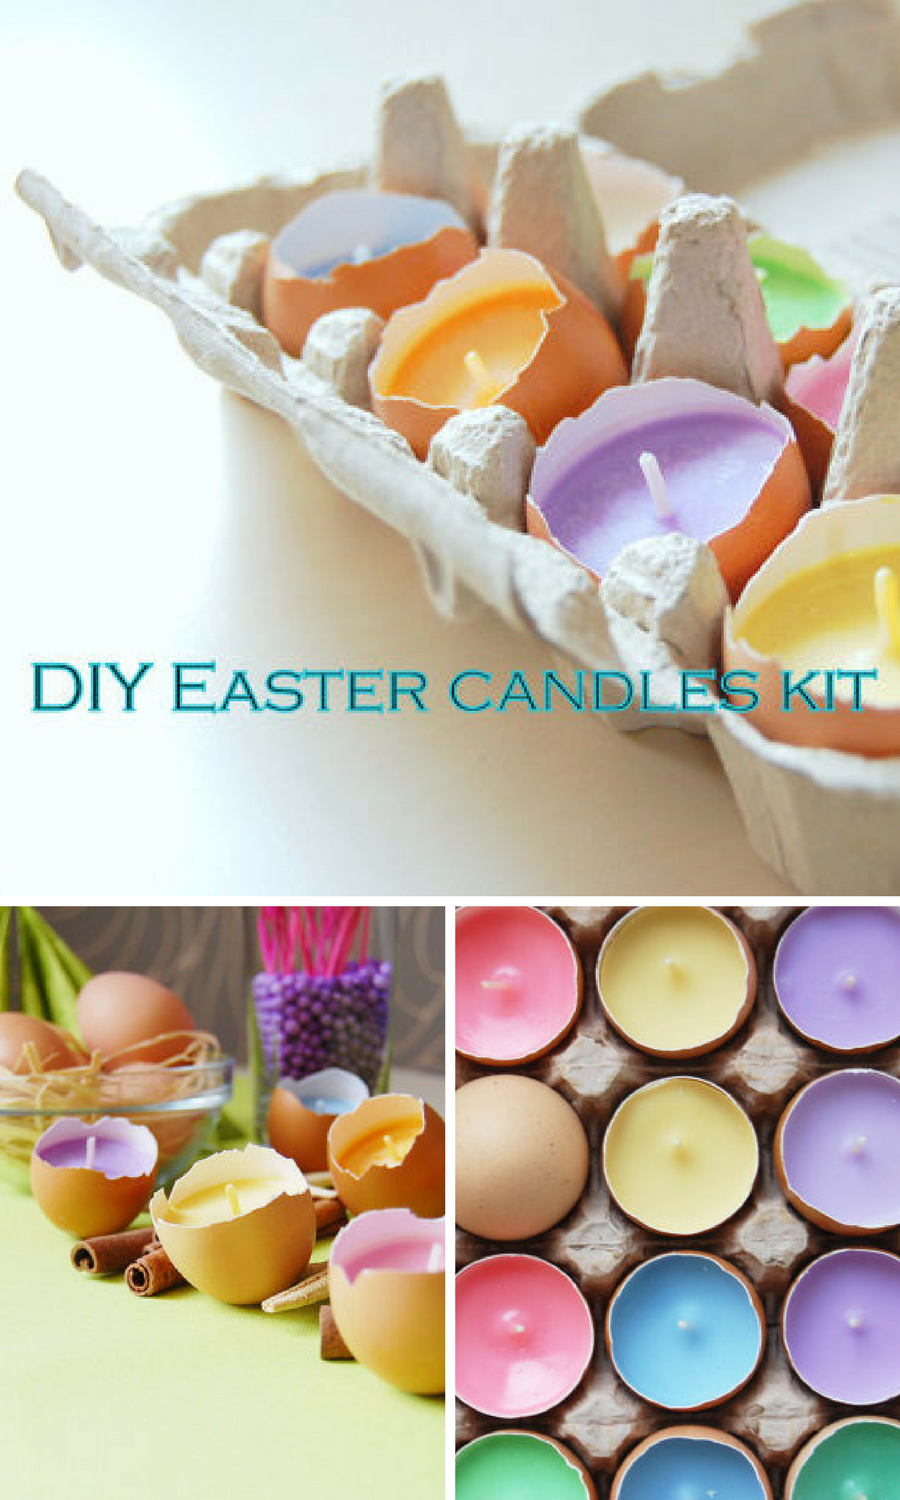 Diy Easter Candles Making Kit Set Of 10 Pastel Colors Soy Wax Easy Diy Kit For Eco Friendly Easter Home Decor Kidac Easter Diy Candle Making Kit Candle Kits